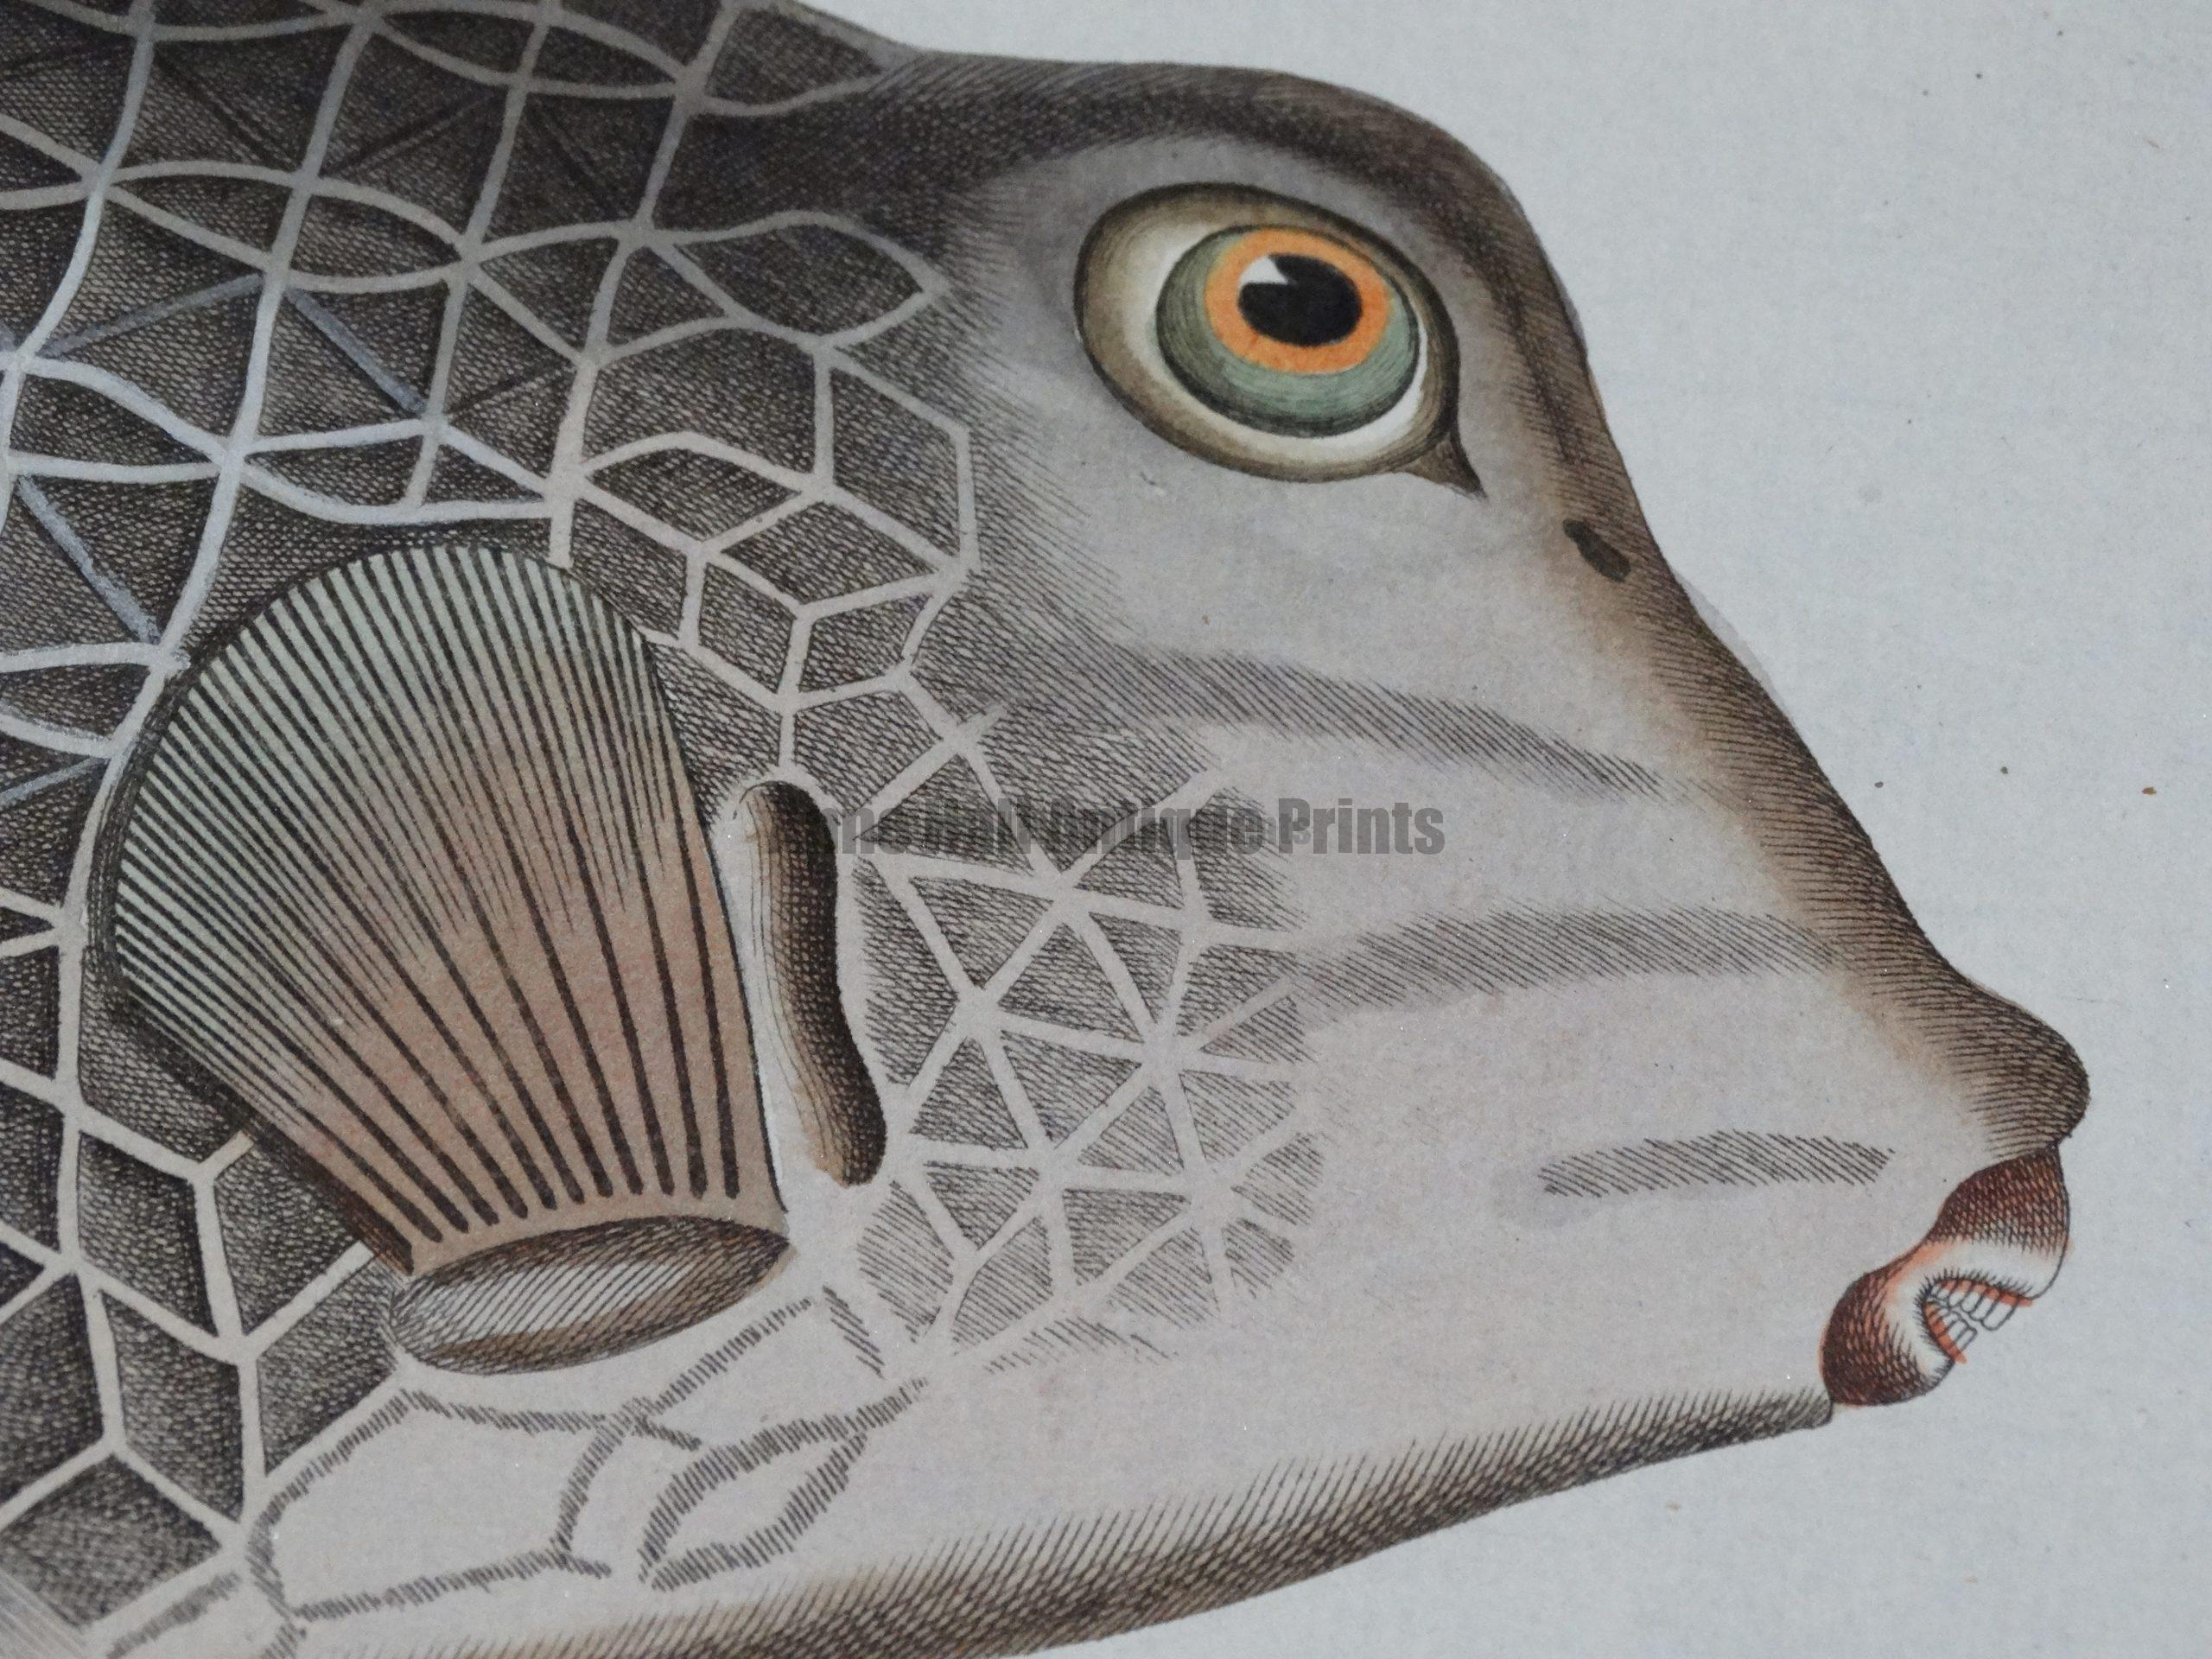 Bloch Fish 18th Century Engravings from one of the leading rare prints galleries in New England.